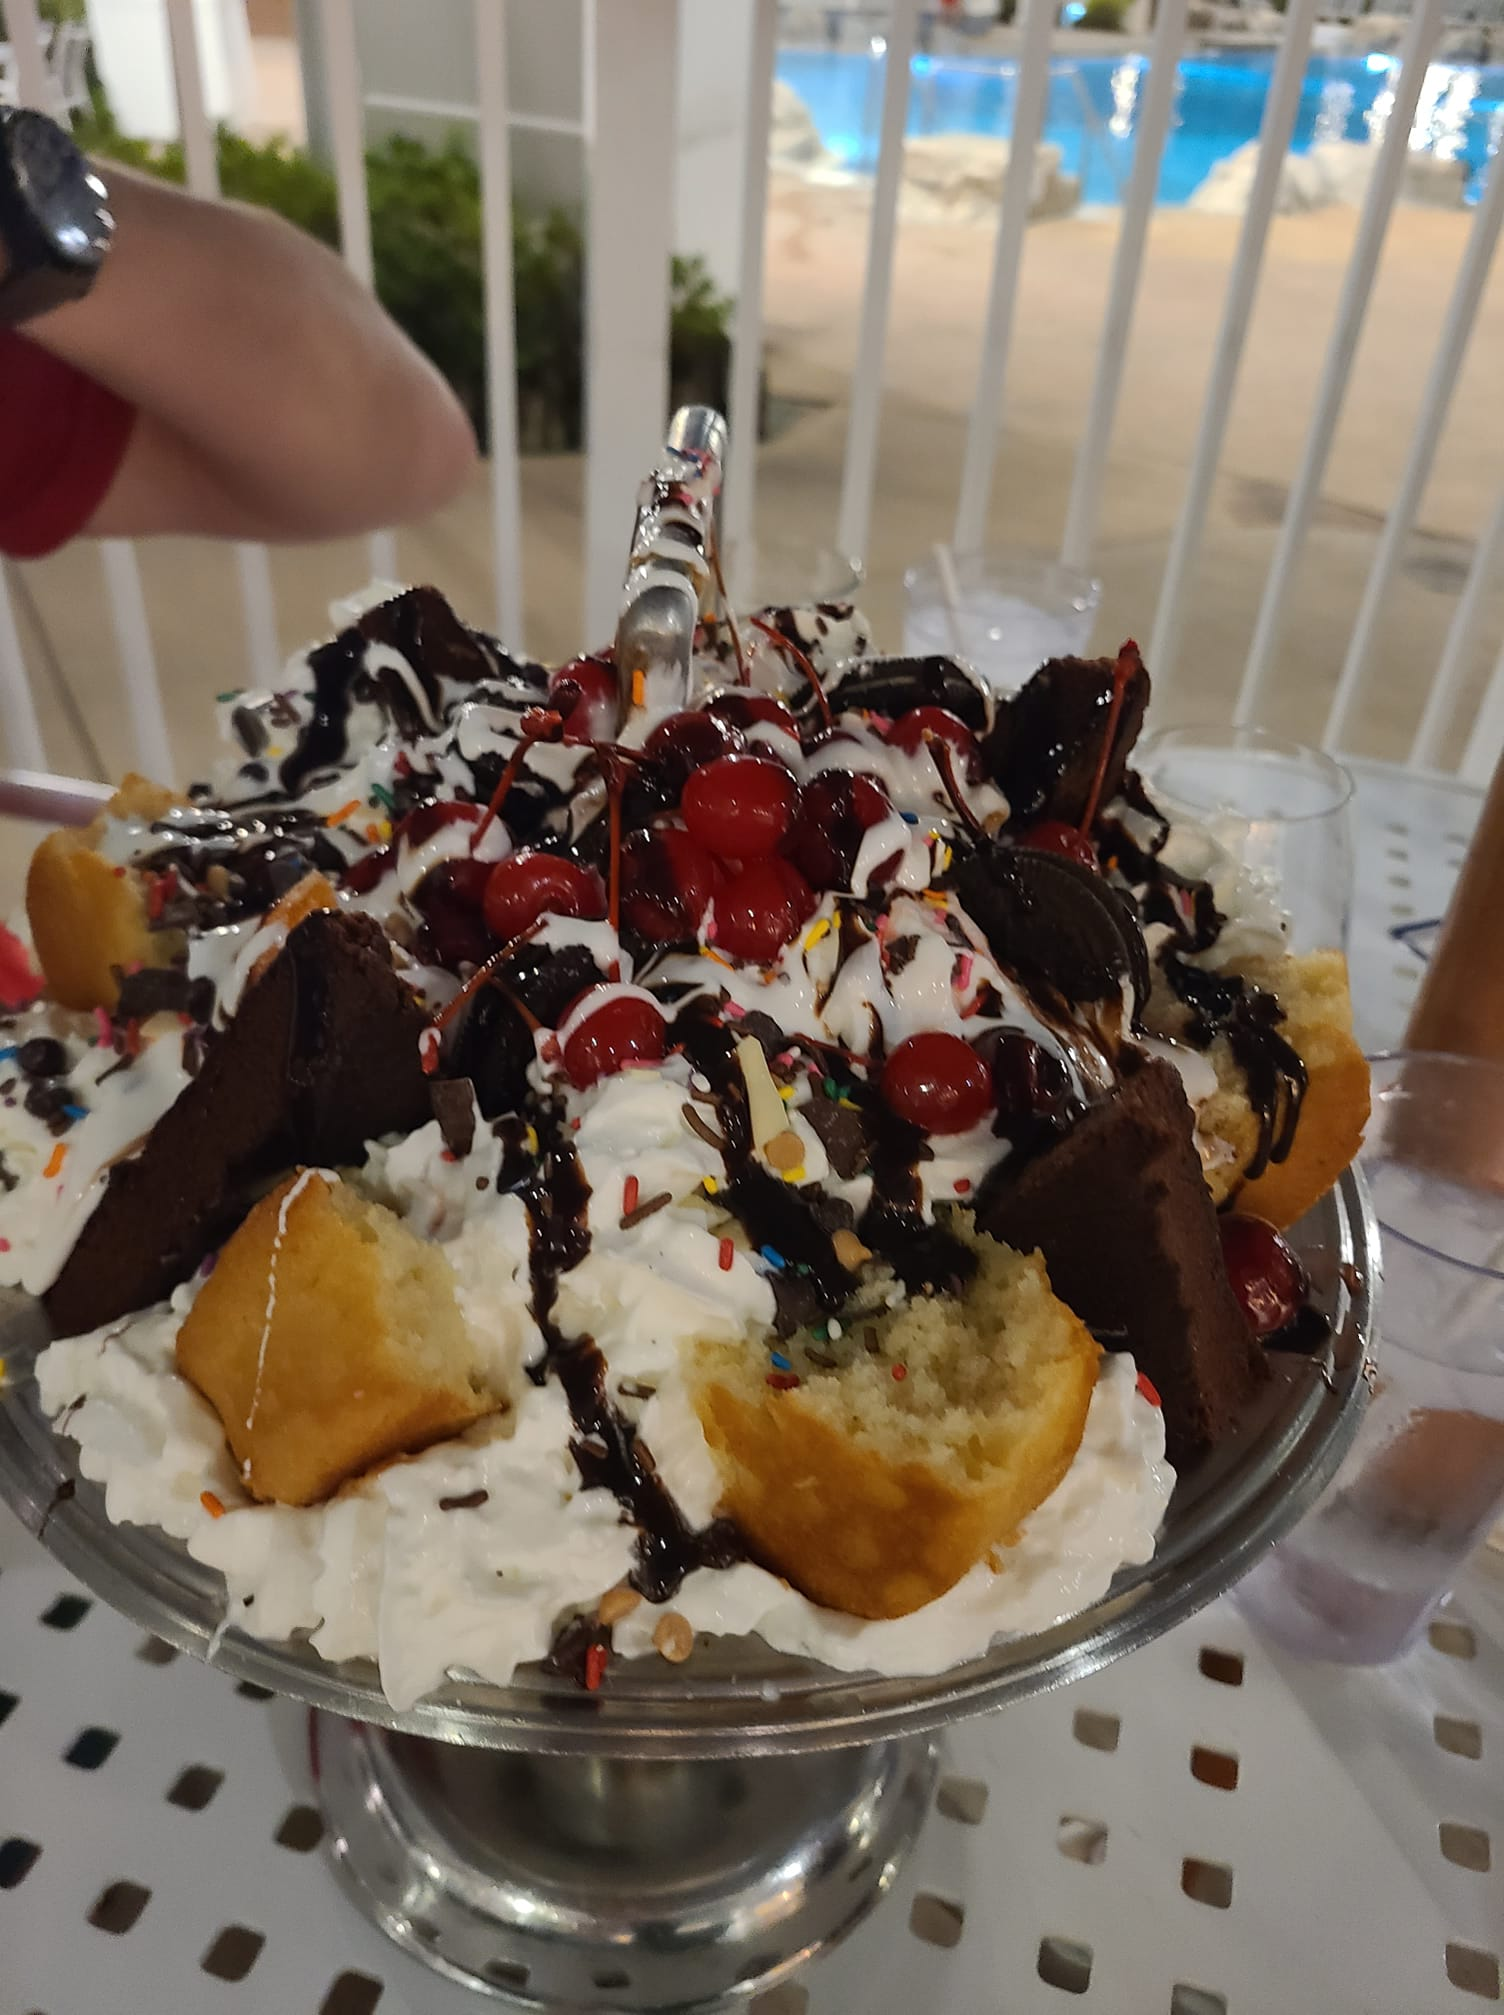 Beaches and Cream restaurant: The Kitchen Sink Ice Cream Sundae